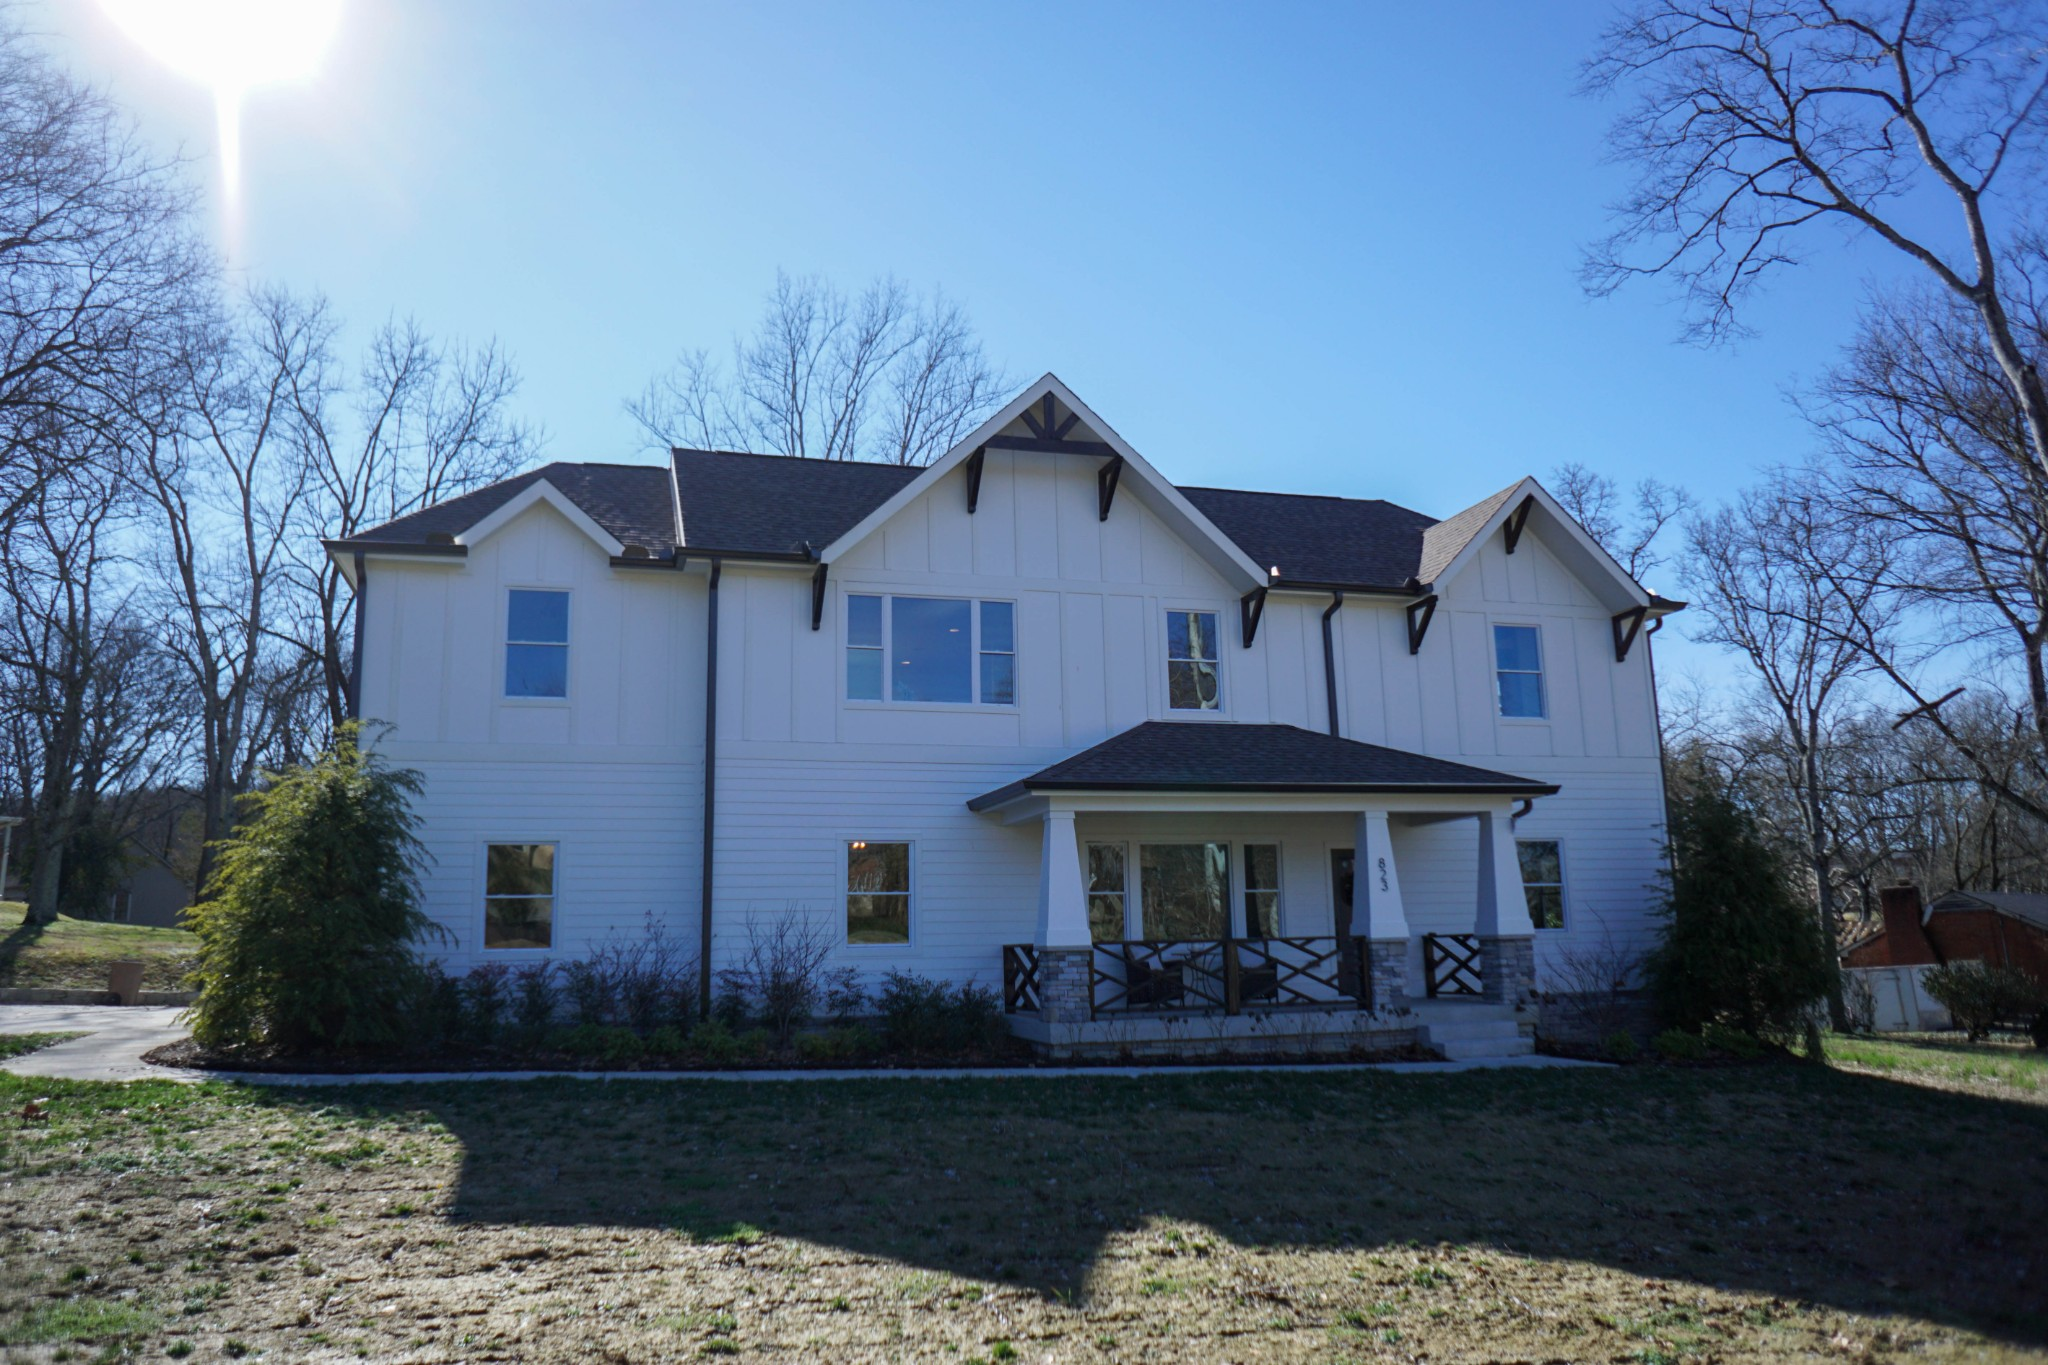 823 Summerly Dr, Nashville, TN 37209 - Nashville, TN real estate listing